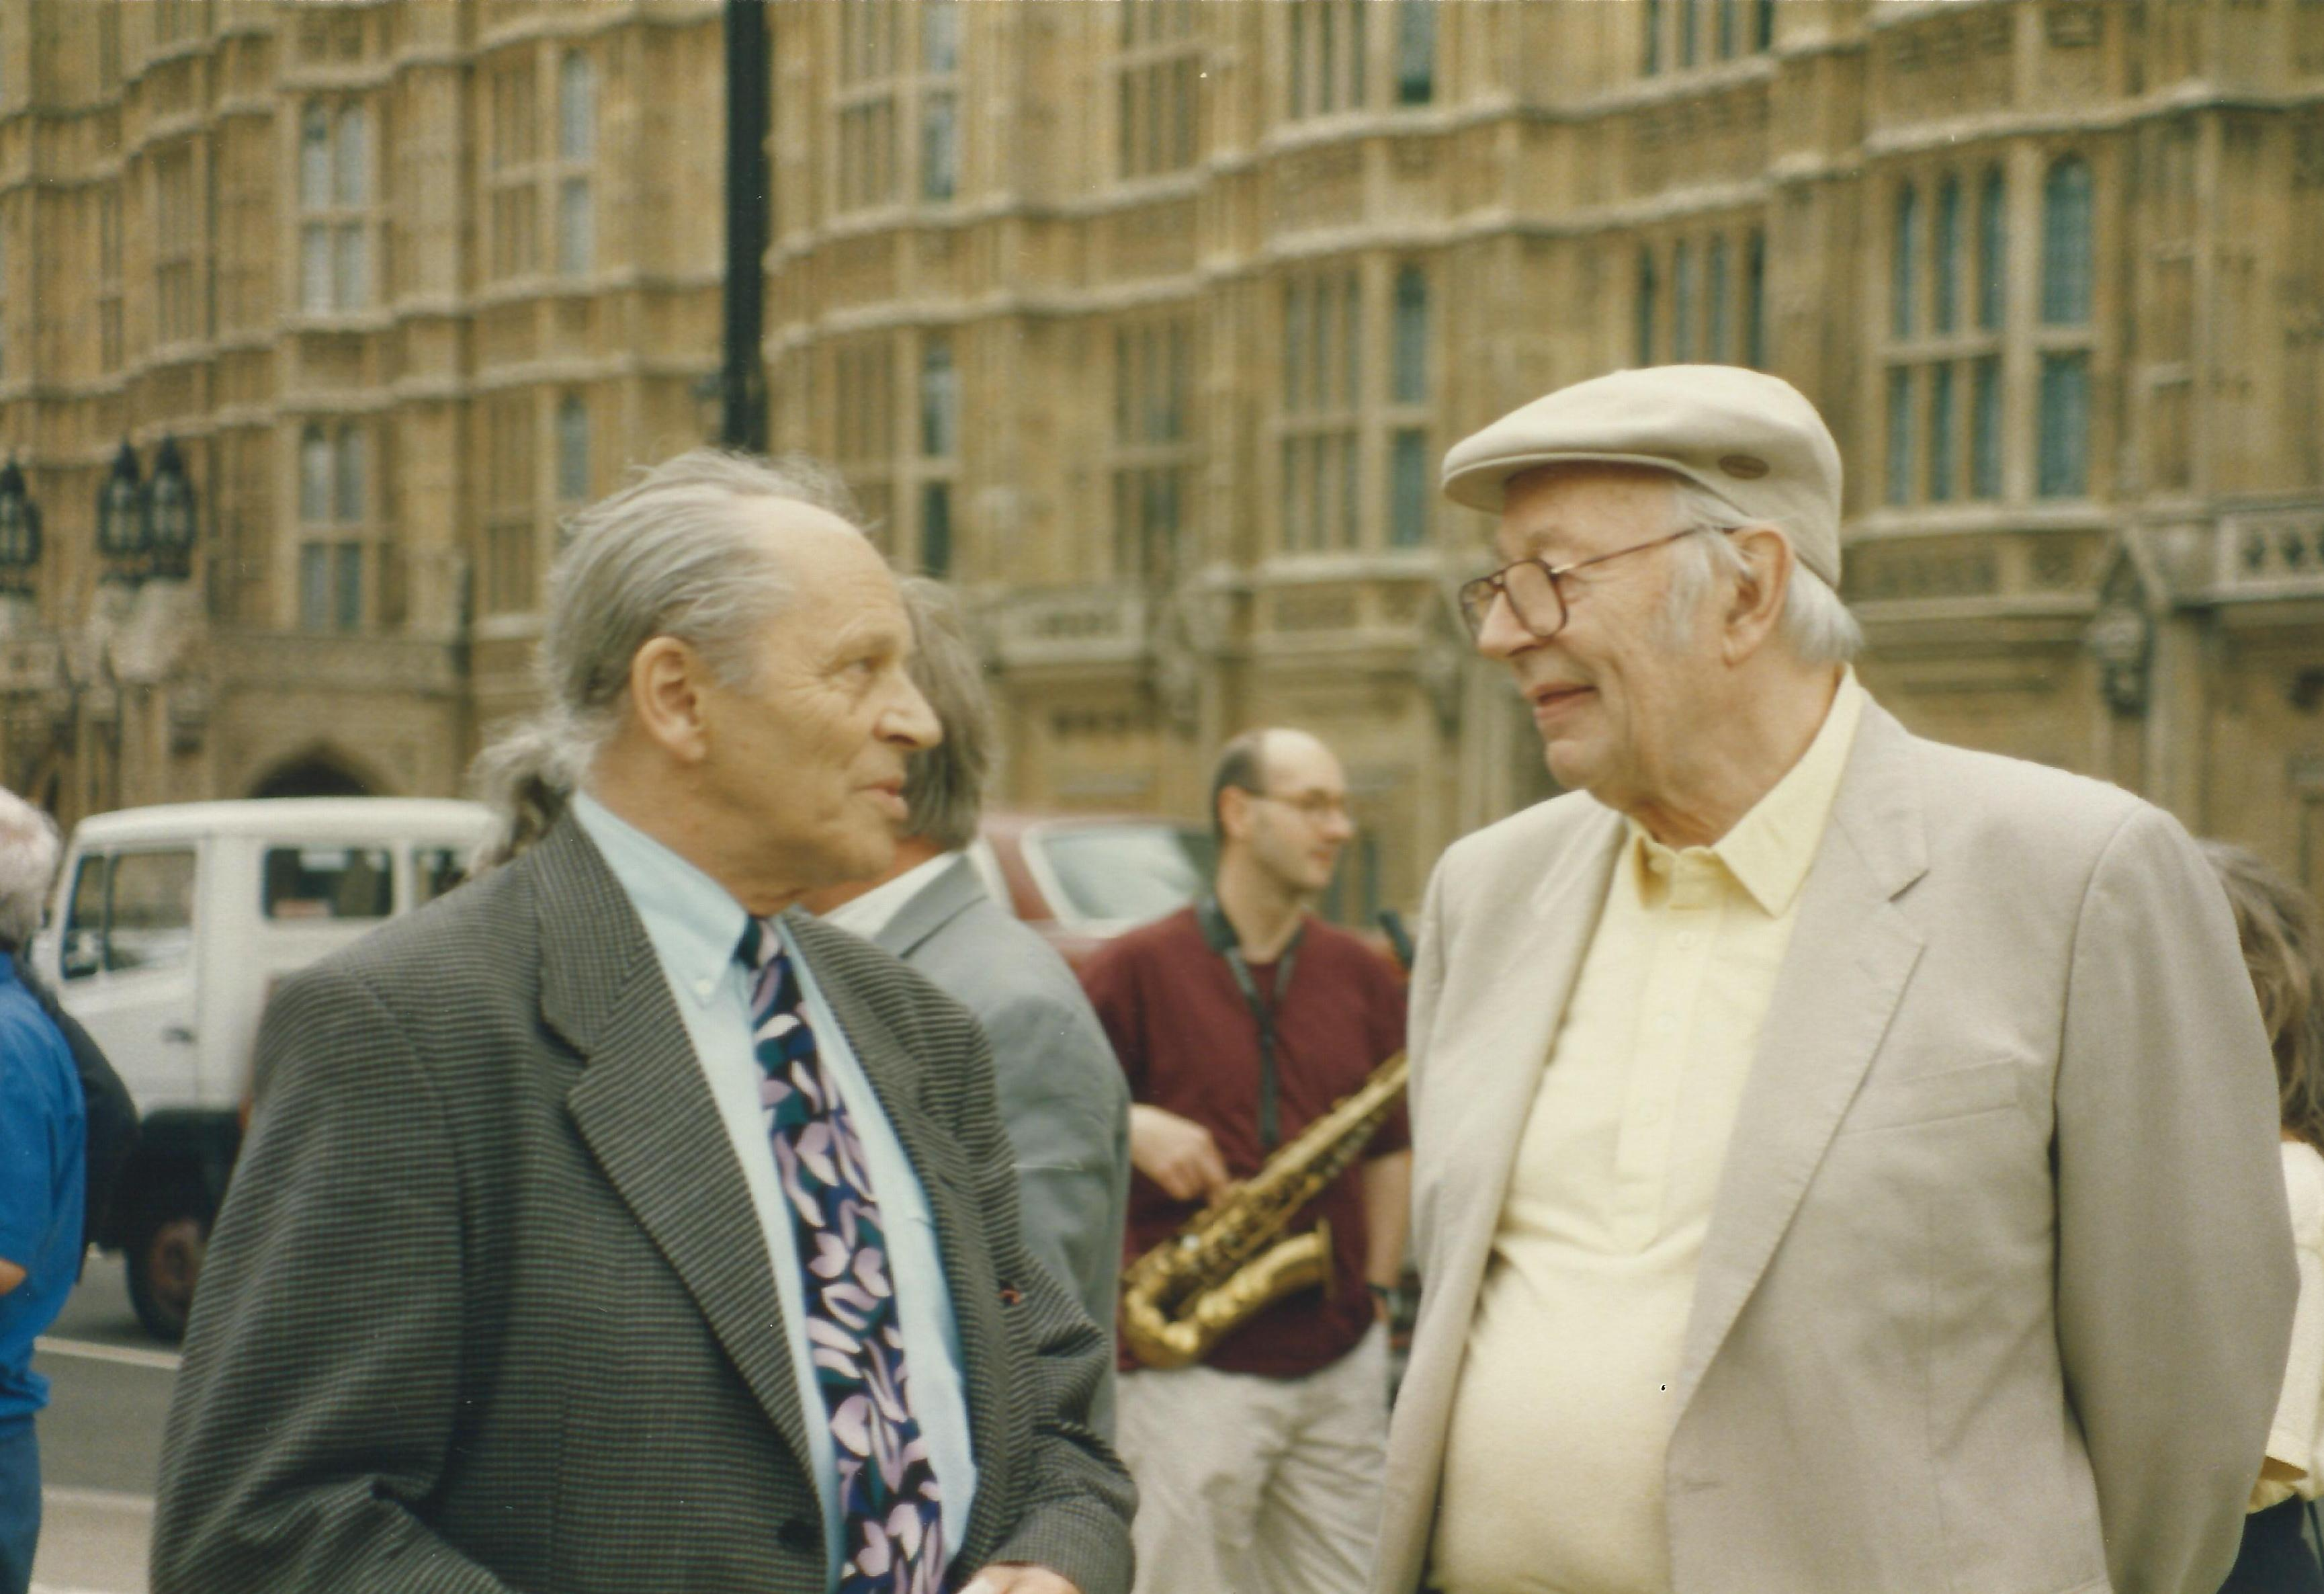 John Dankworth, and Humphrey Lyttelton